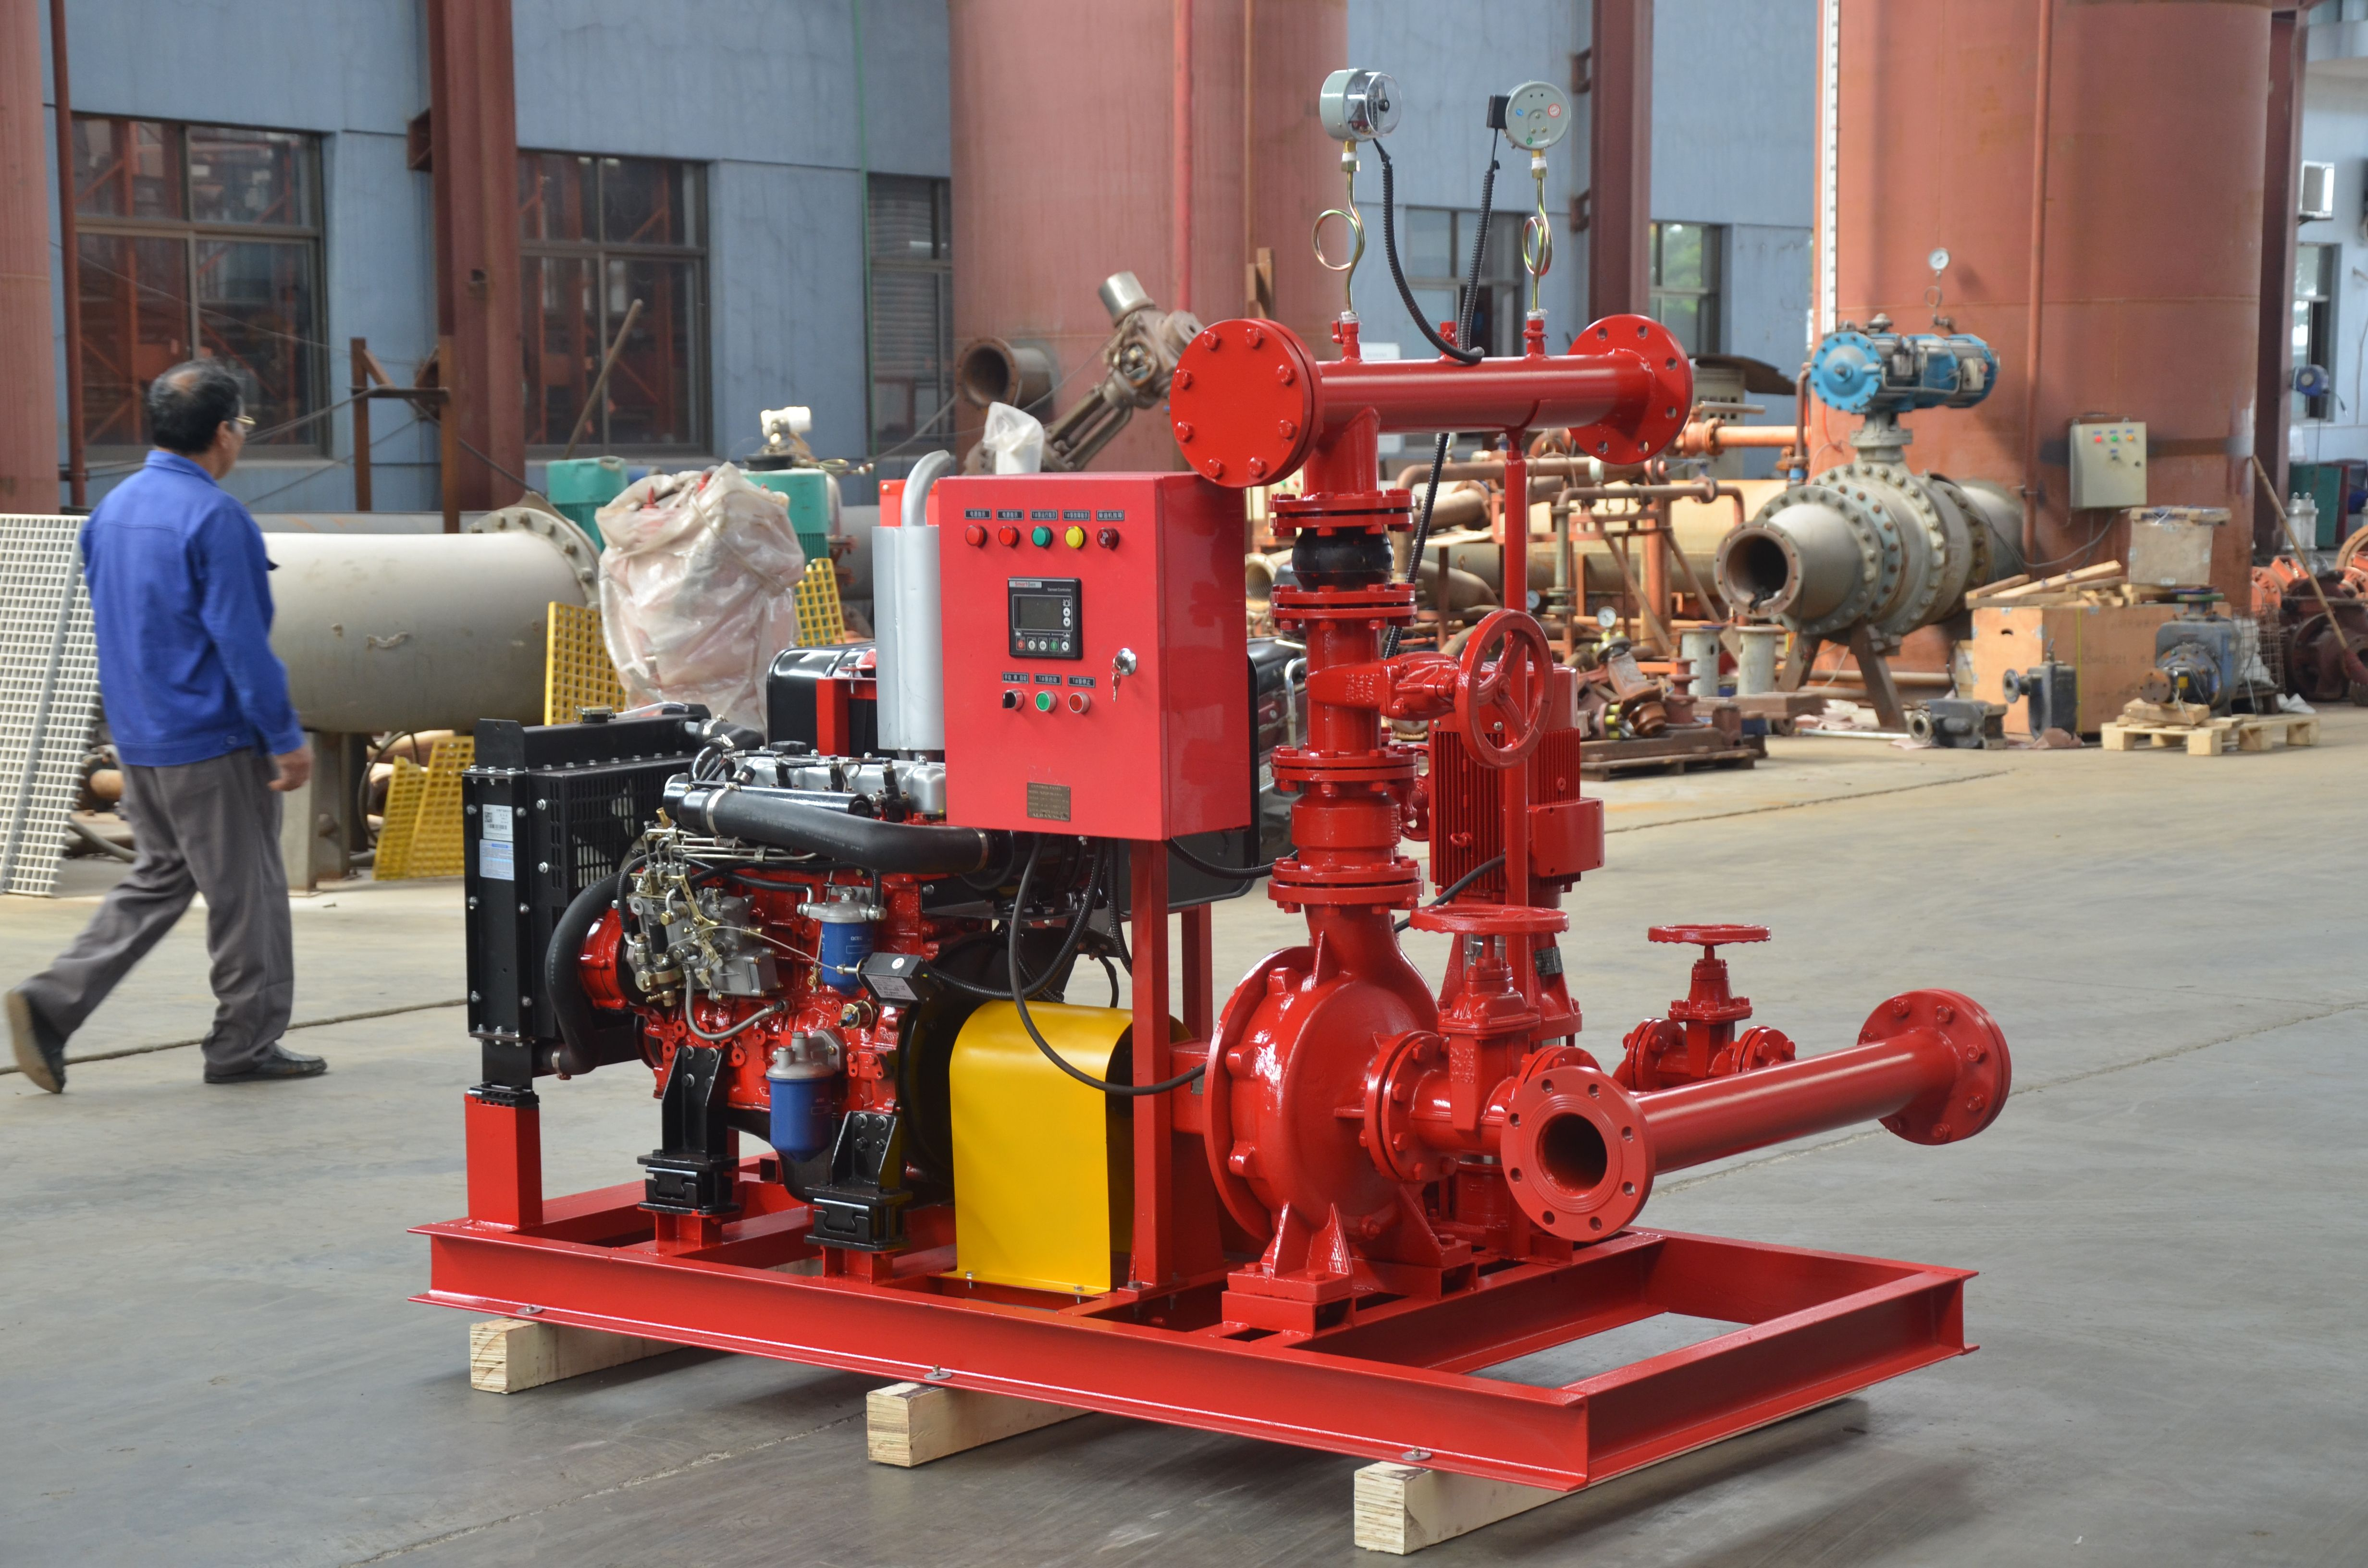 Fire Pump Package Comprises A Combination Of Electric Motor Driven Pump Diesel Engine Driven And Electric M Fire Fighting Pumps Electric Fires Fire Protection